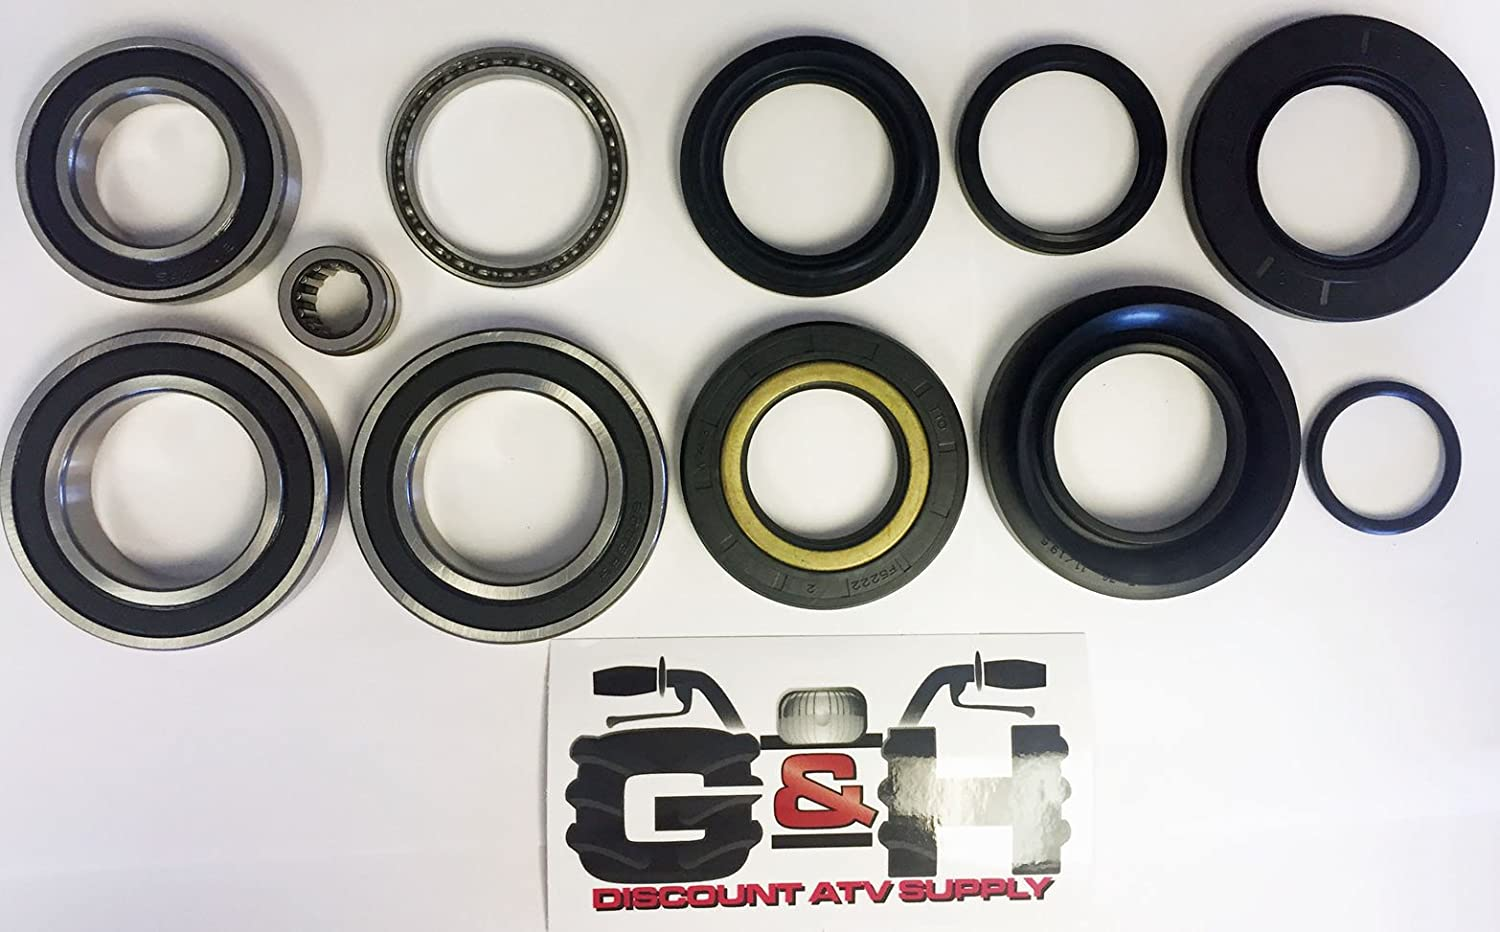 Rear Wheel Bearing Seal TRX350 Rancher 2x4 4x4 2000-2006 Complete Axle Rebuild